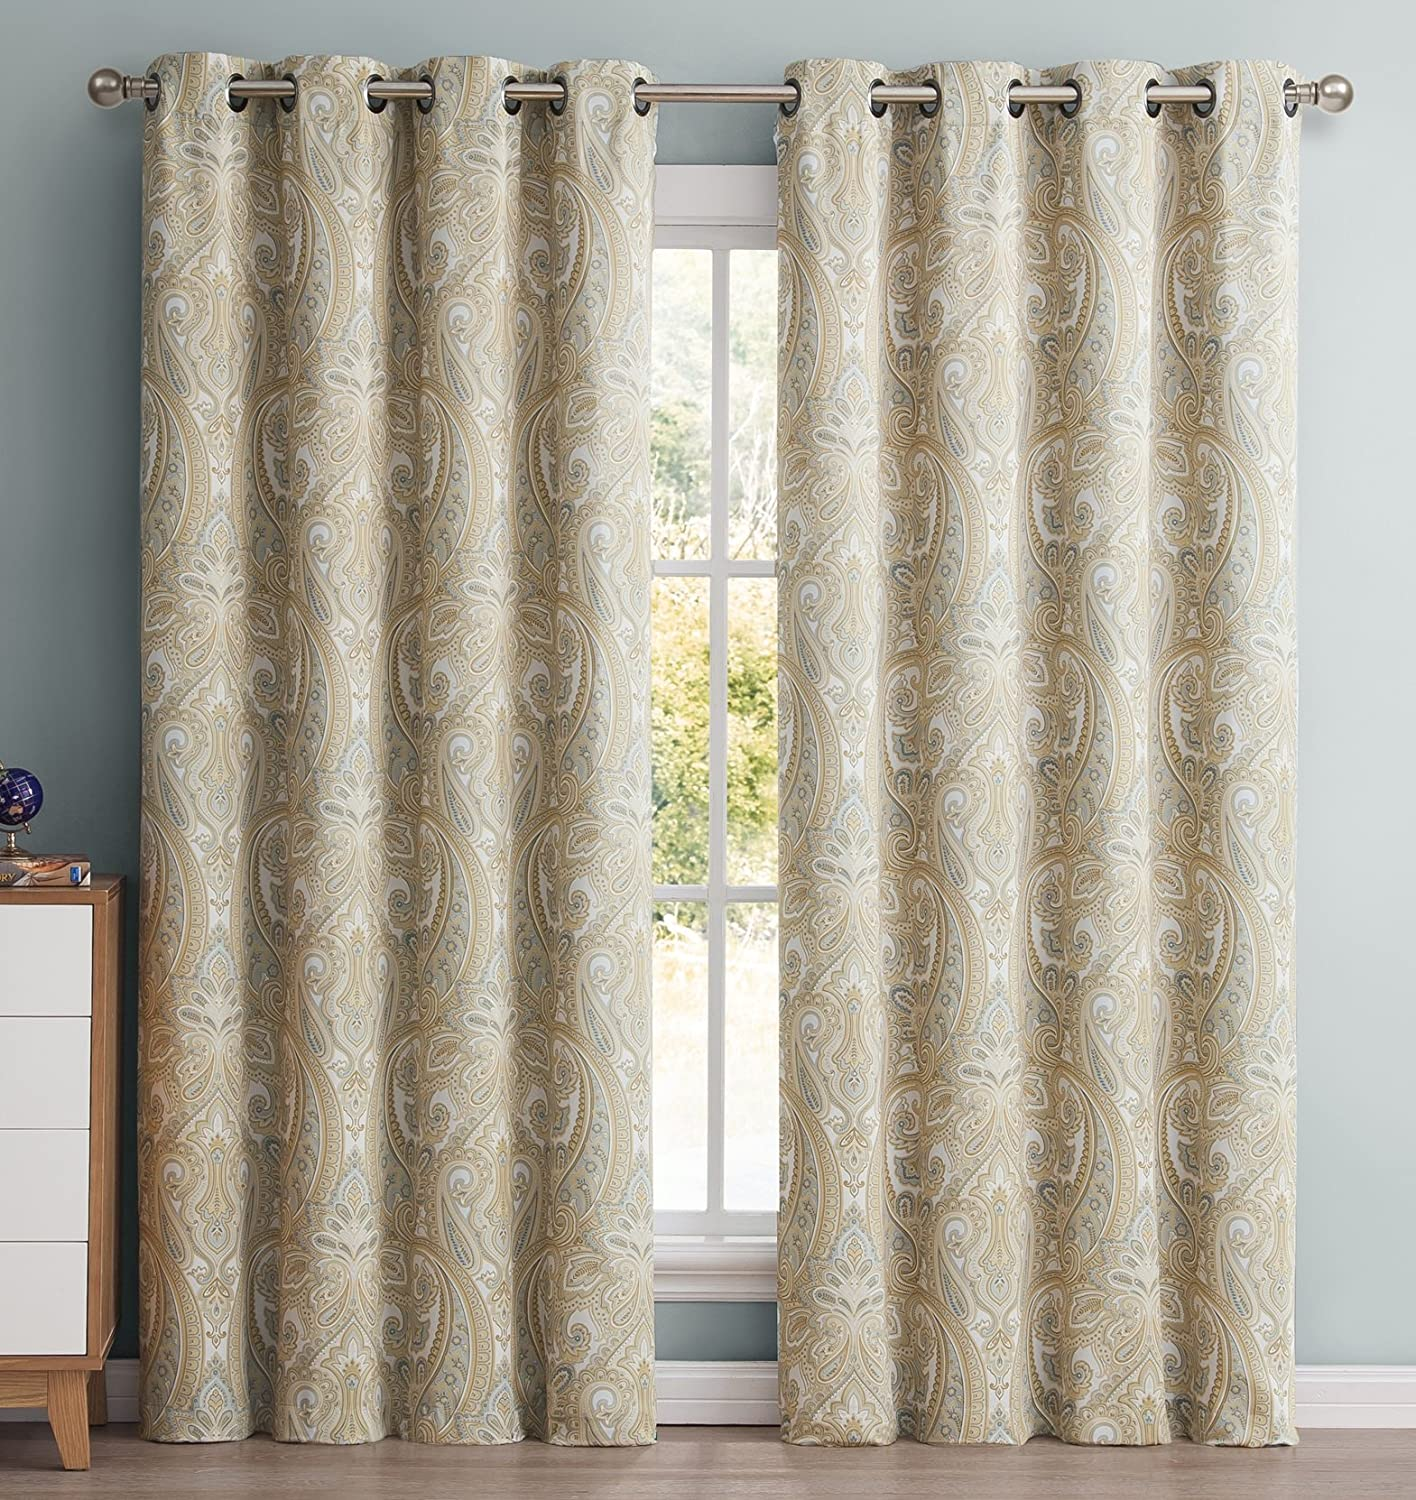 for burlap set prairie of room kitchen curtains window curtain amazon each treatments dp living com home long natural